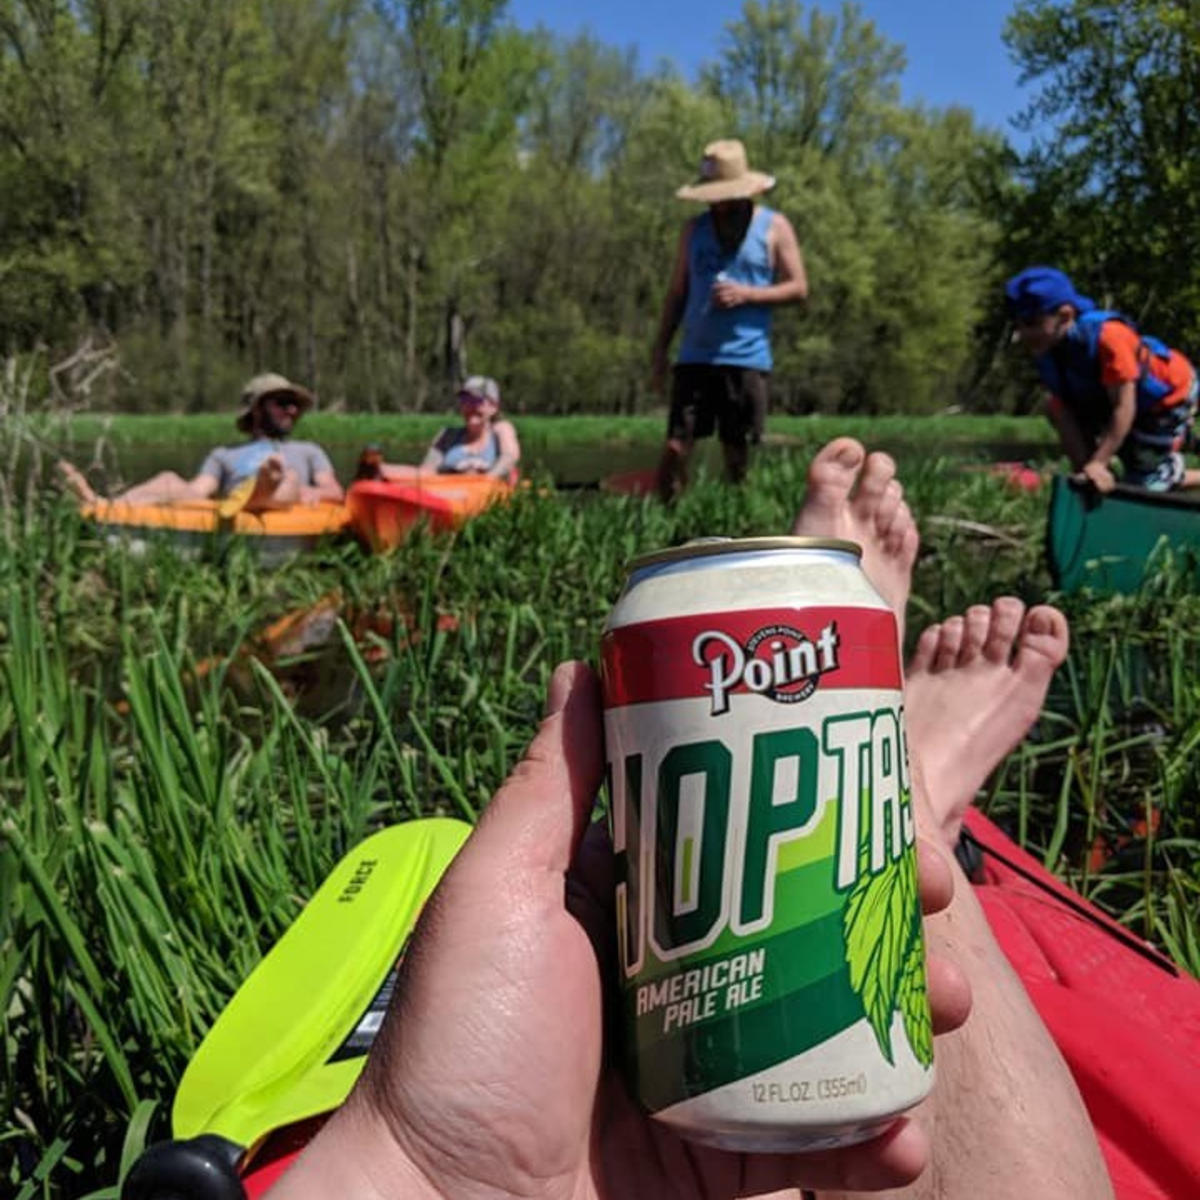 Paddling the Plover River, in the Stevens Point Area.